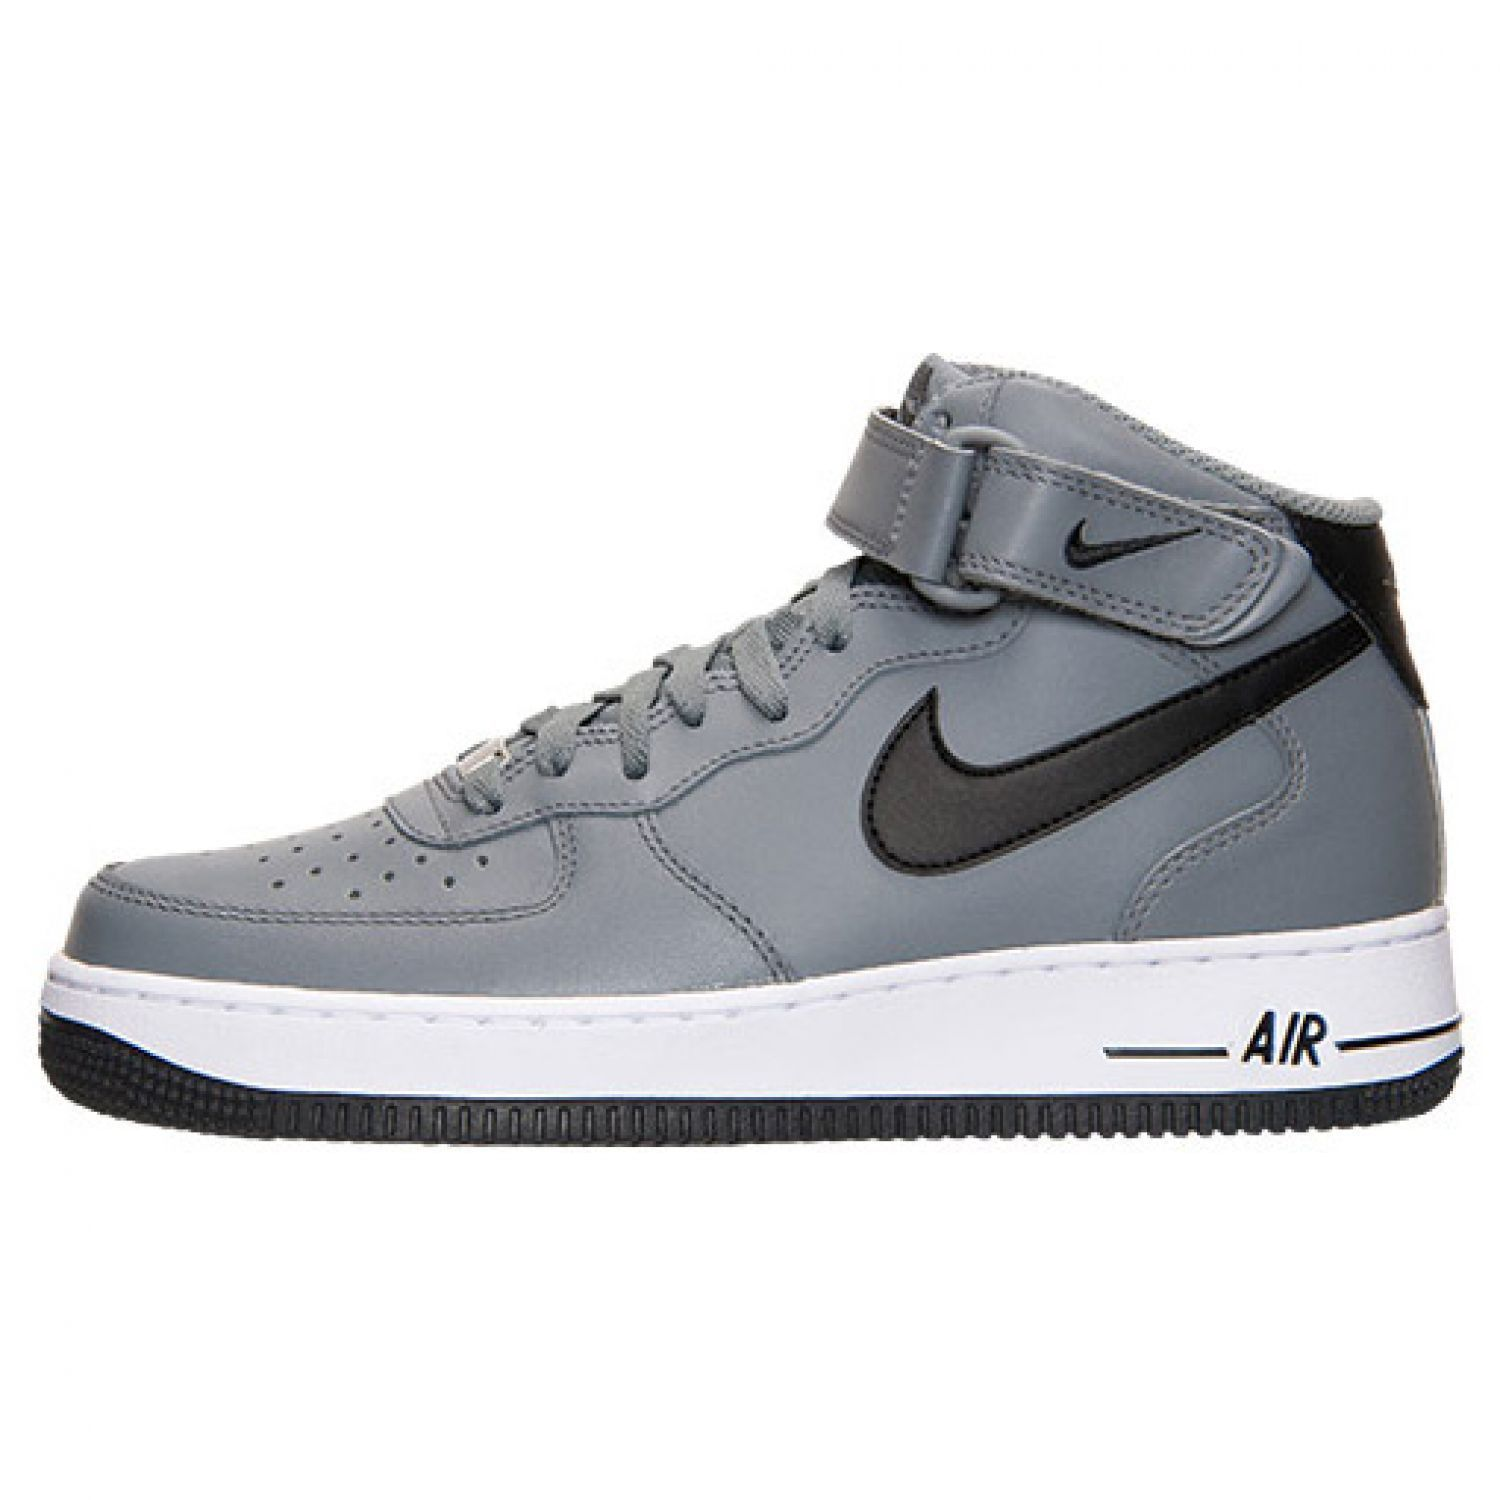 c389aca927c1cb MENS NIKE AIR FORCE 107 MID SHOES SIZE 9 grey black white 315123 026 ...